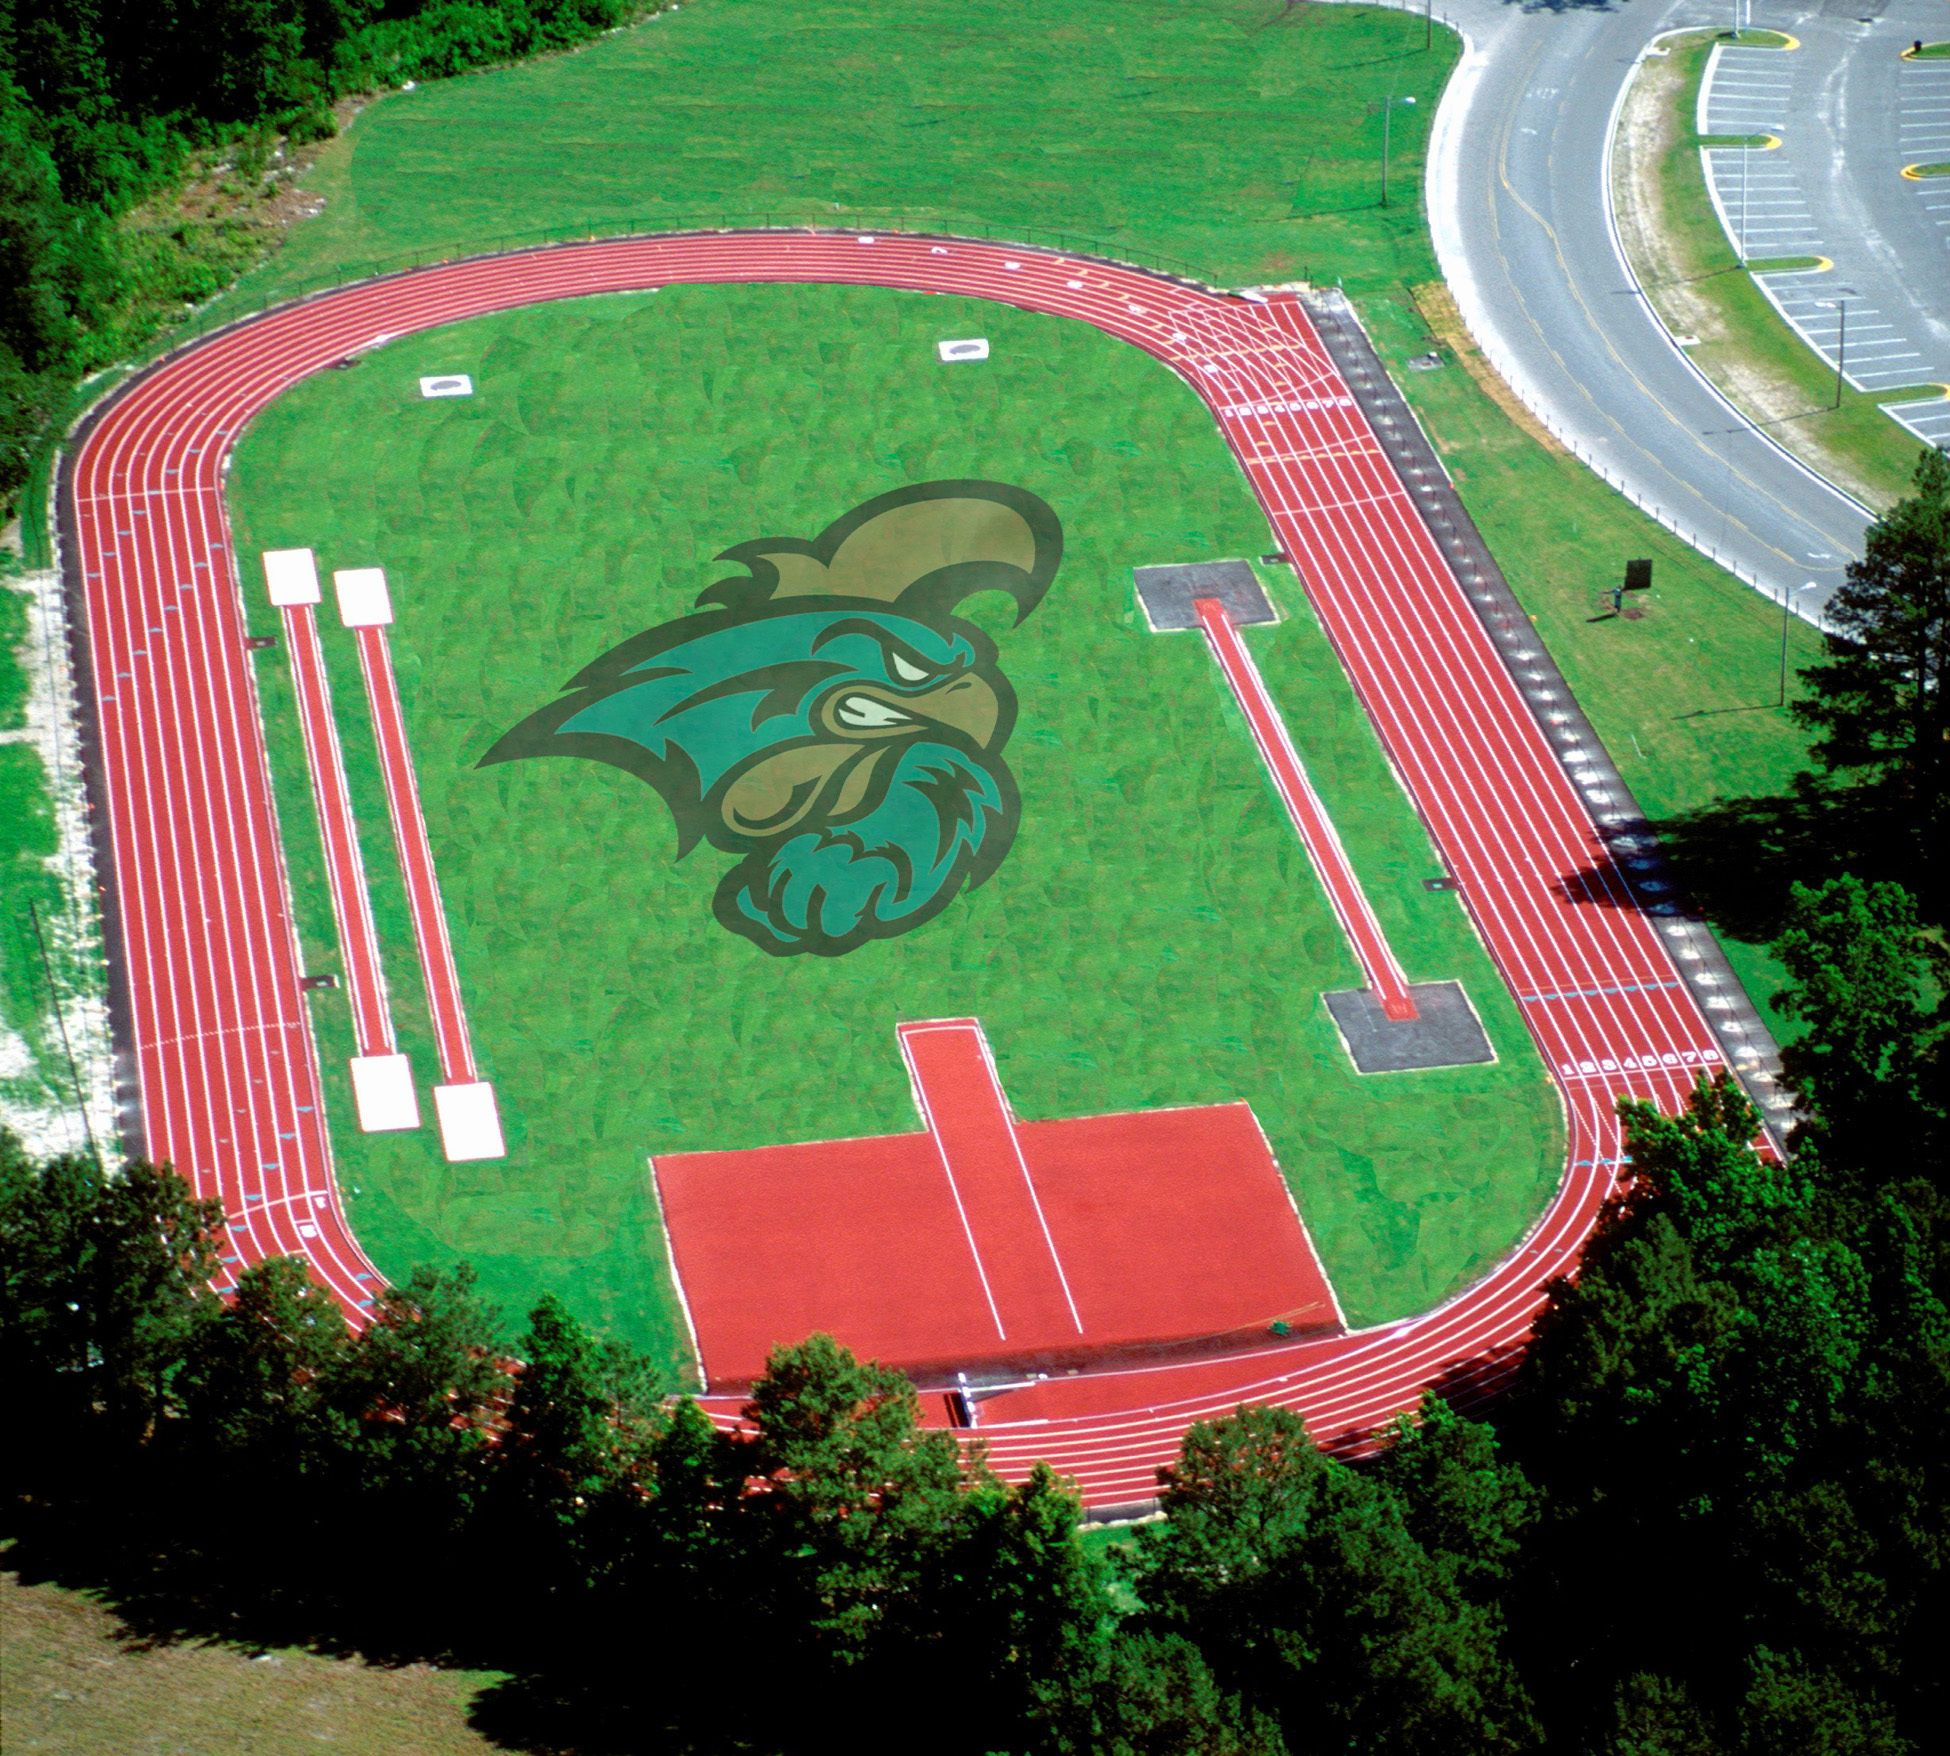 Coastal Carolina Official Athletic Site Facilities Coastal Carolina University Coastal Carolina Coastal